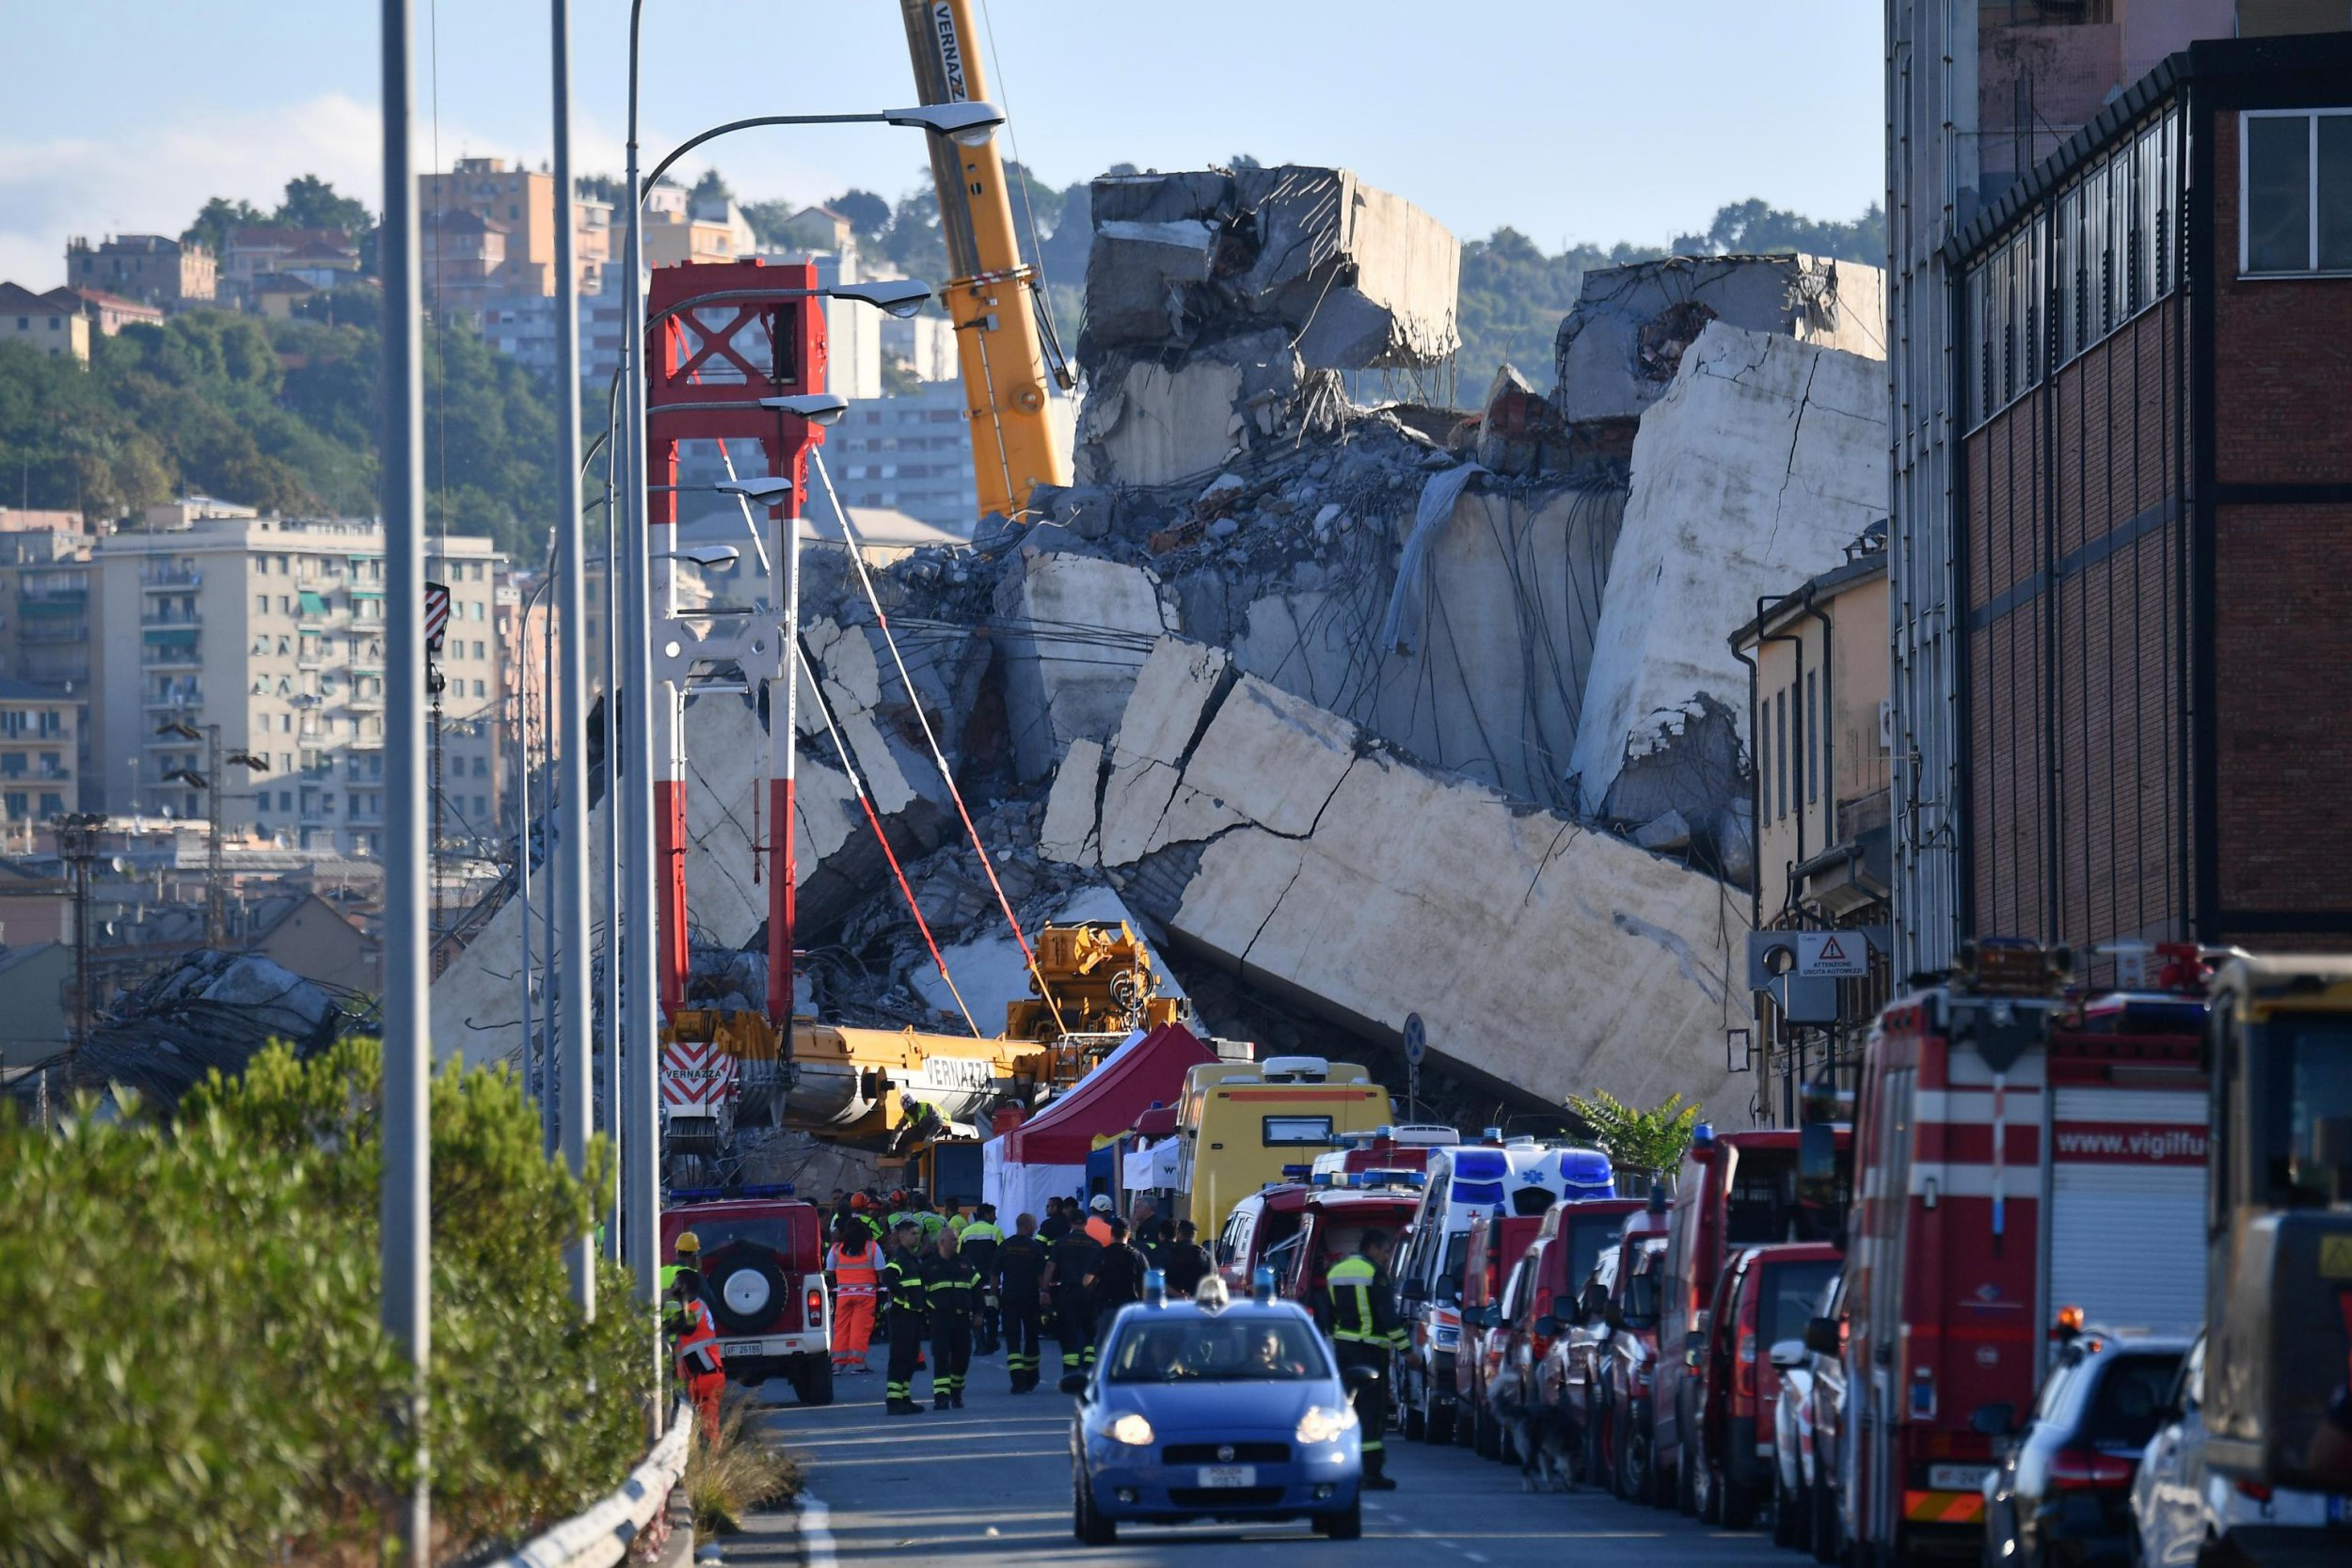 epaselect epa06950684 A general view of the collapsed Morandi bridge the day after the disaster in Genoa, Italy, 15 August 2018. The death toll for Tuesday's highway-bridge-collapse disaster in Genoa has risen to 37, according to reports on 15 August. EPA/LUCA ZENNARO